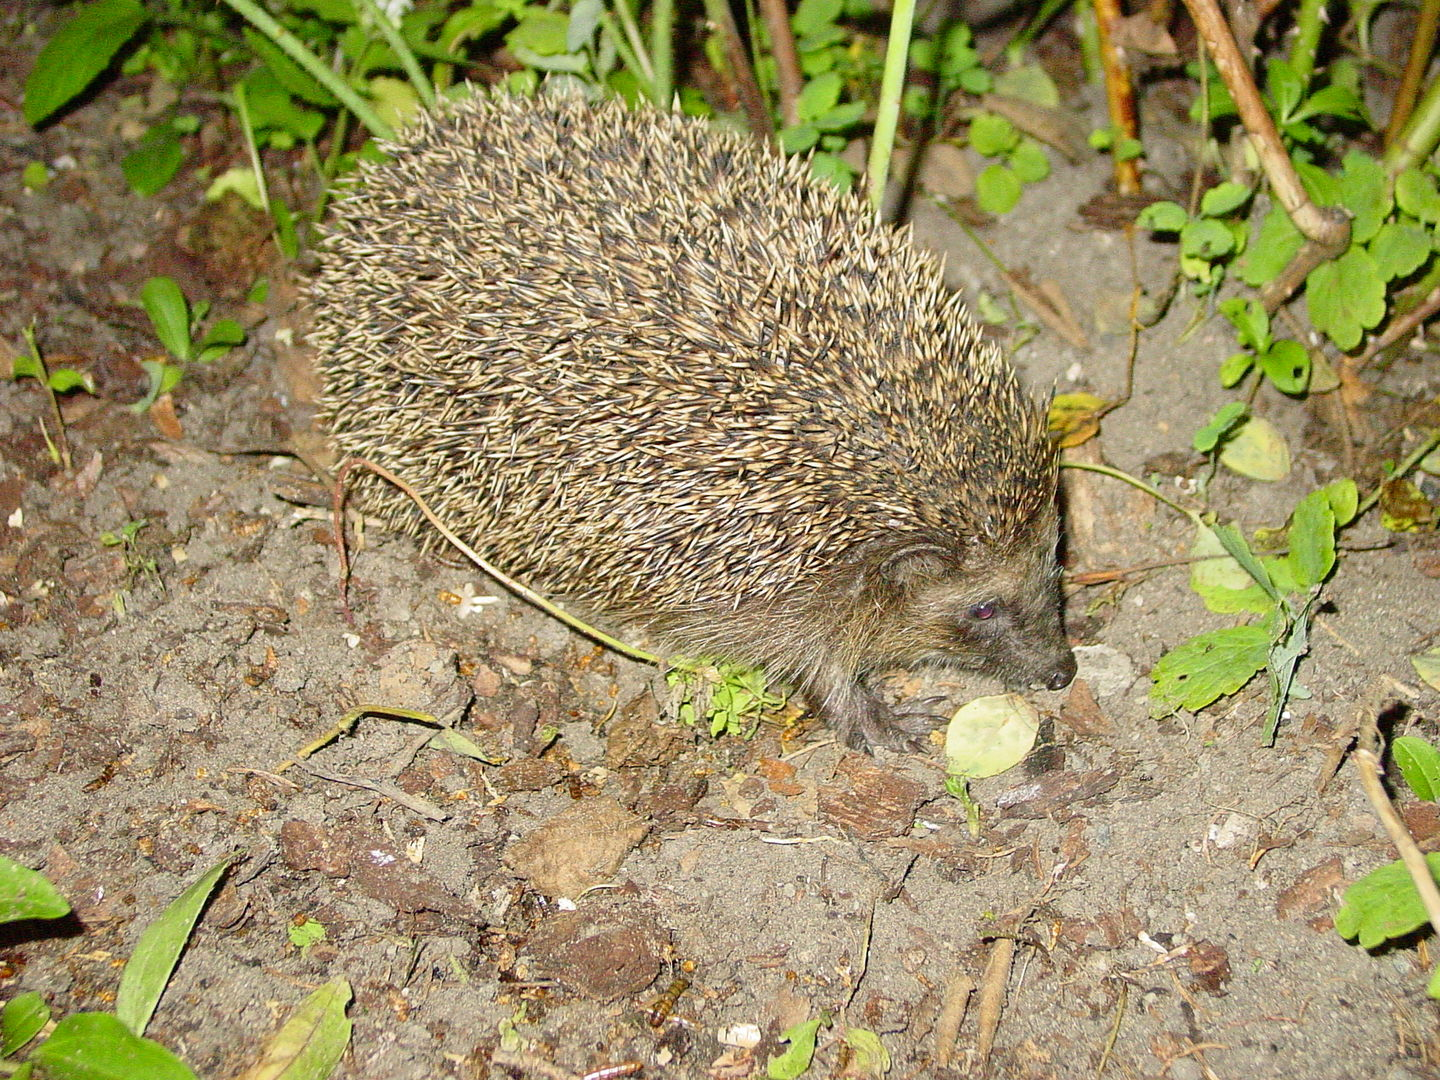 Das Foto zeigt einen erwachsenen Igel im Garten // the photo shows an adult hedgehog in the garden